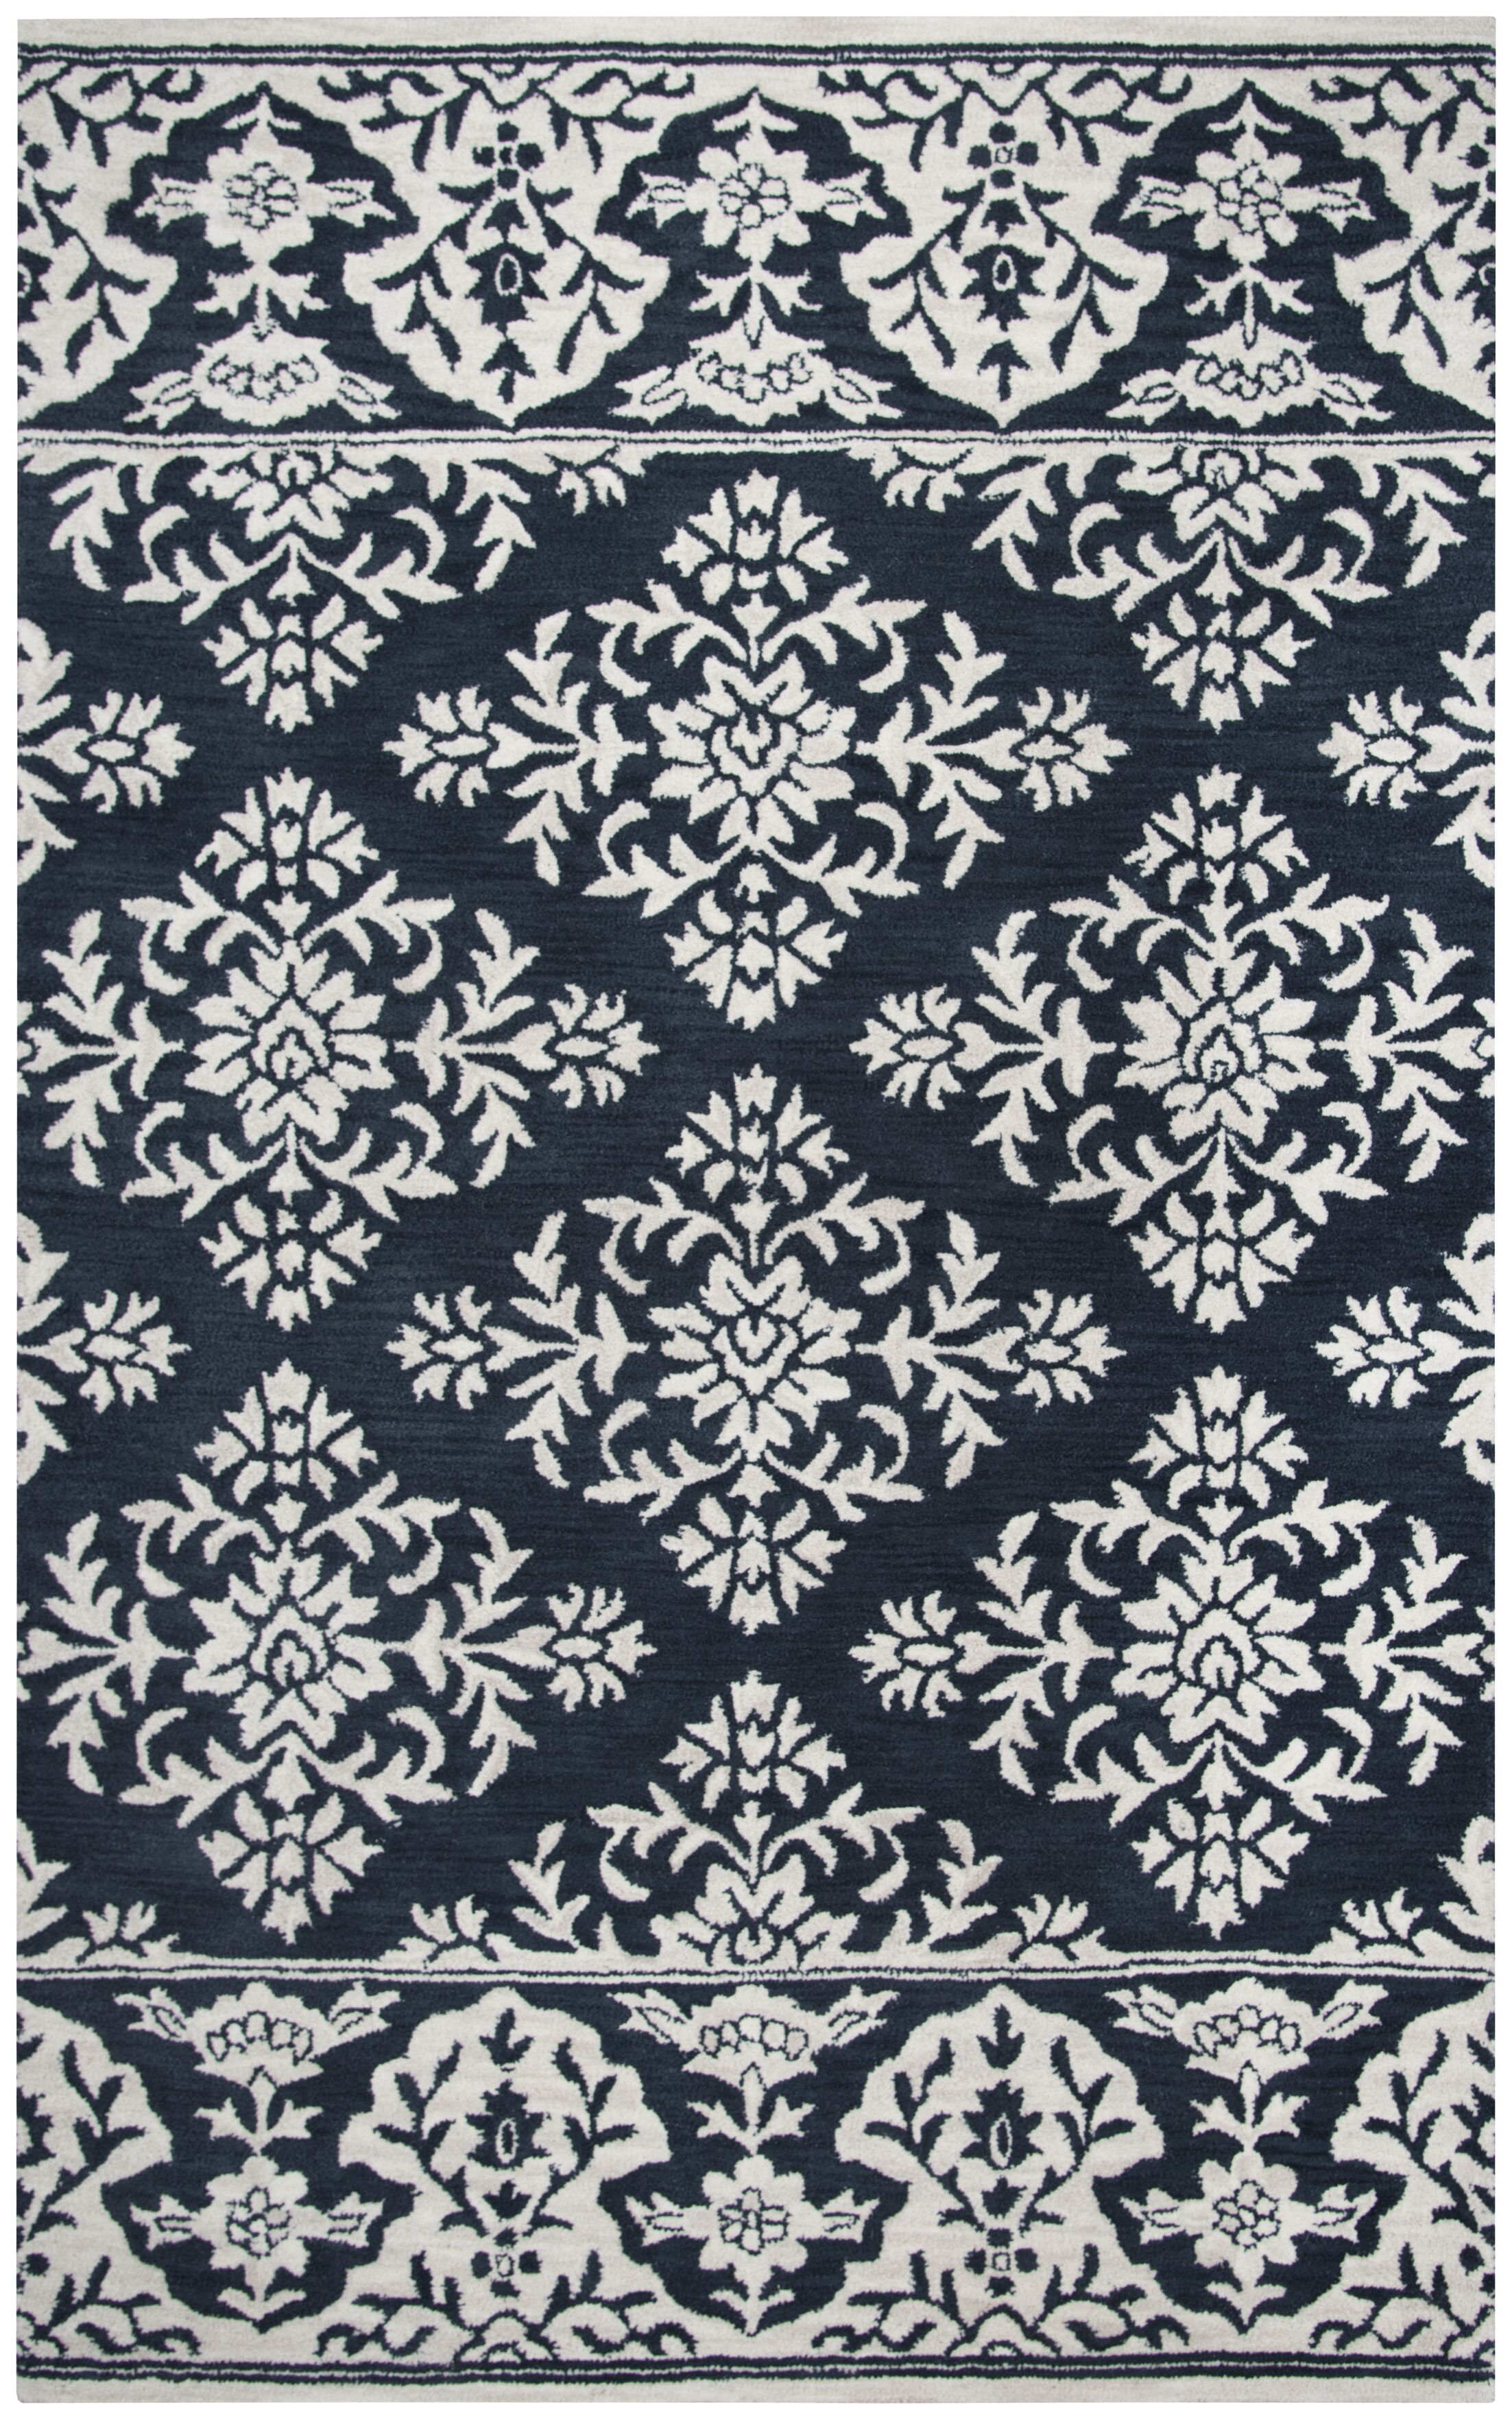 Hulme Hand-Tufted Wool Navy Area Rug Rug Size: Rectangle 5' x 8'